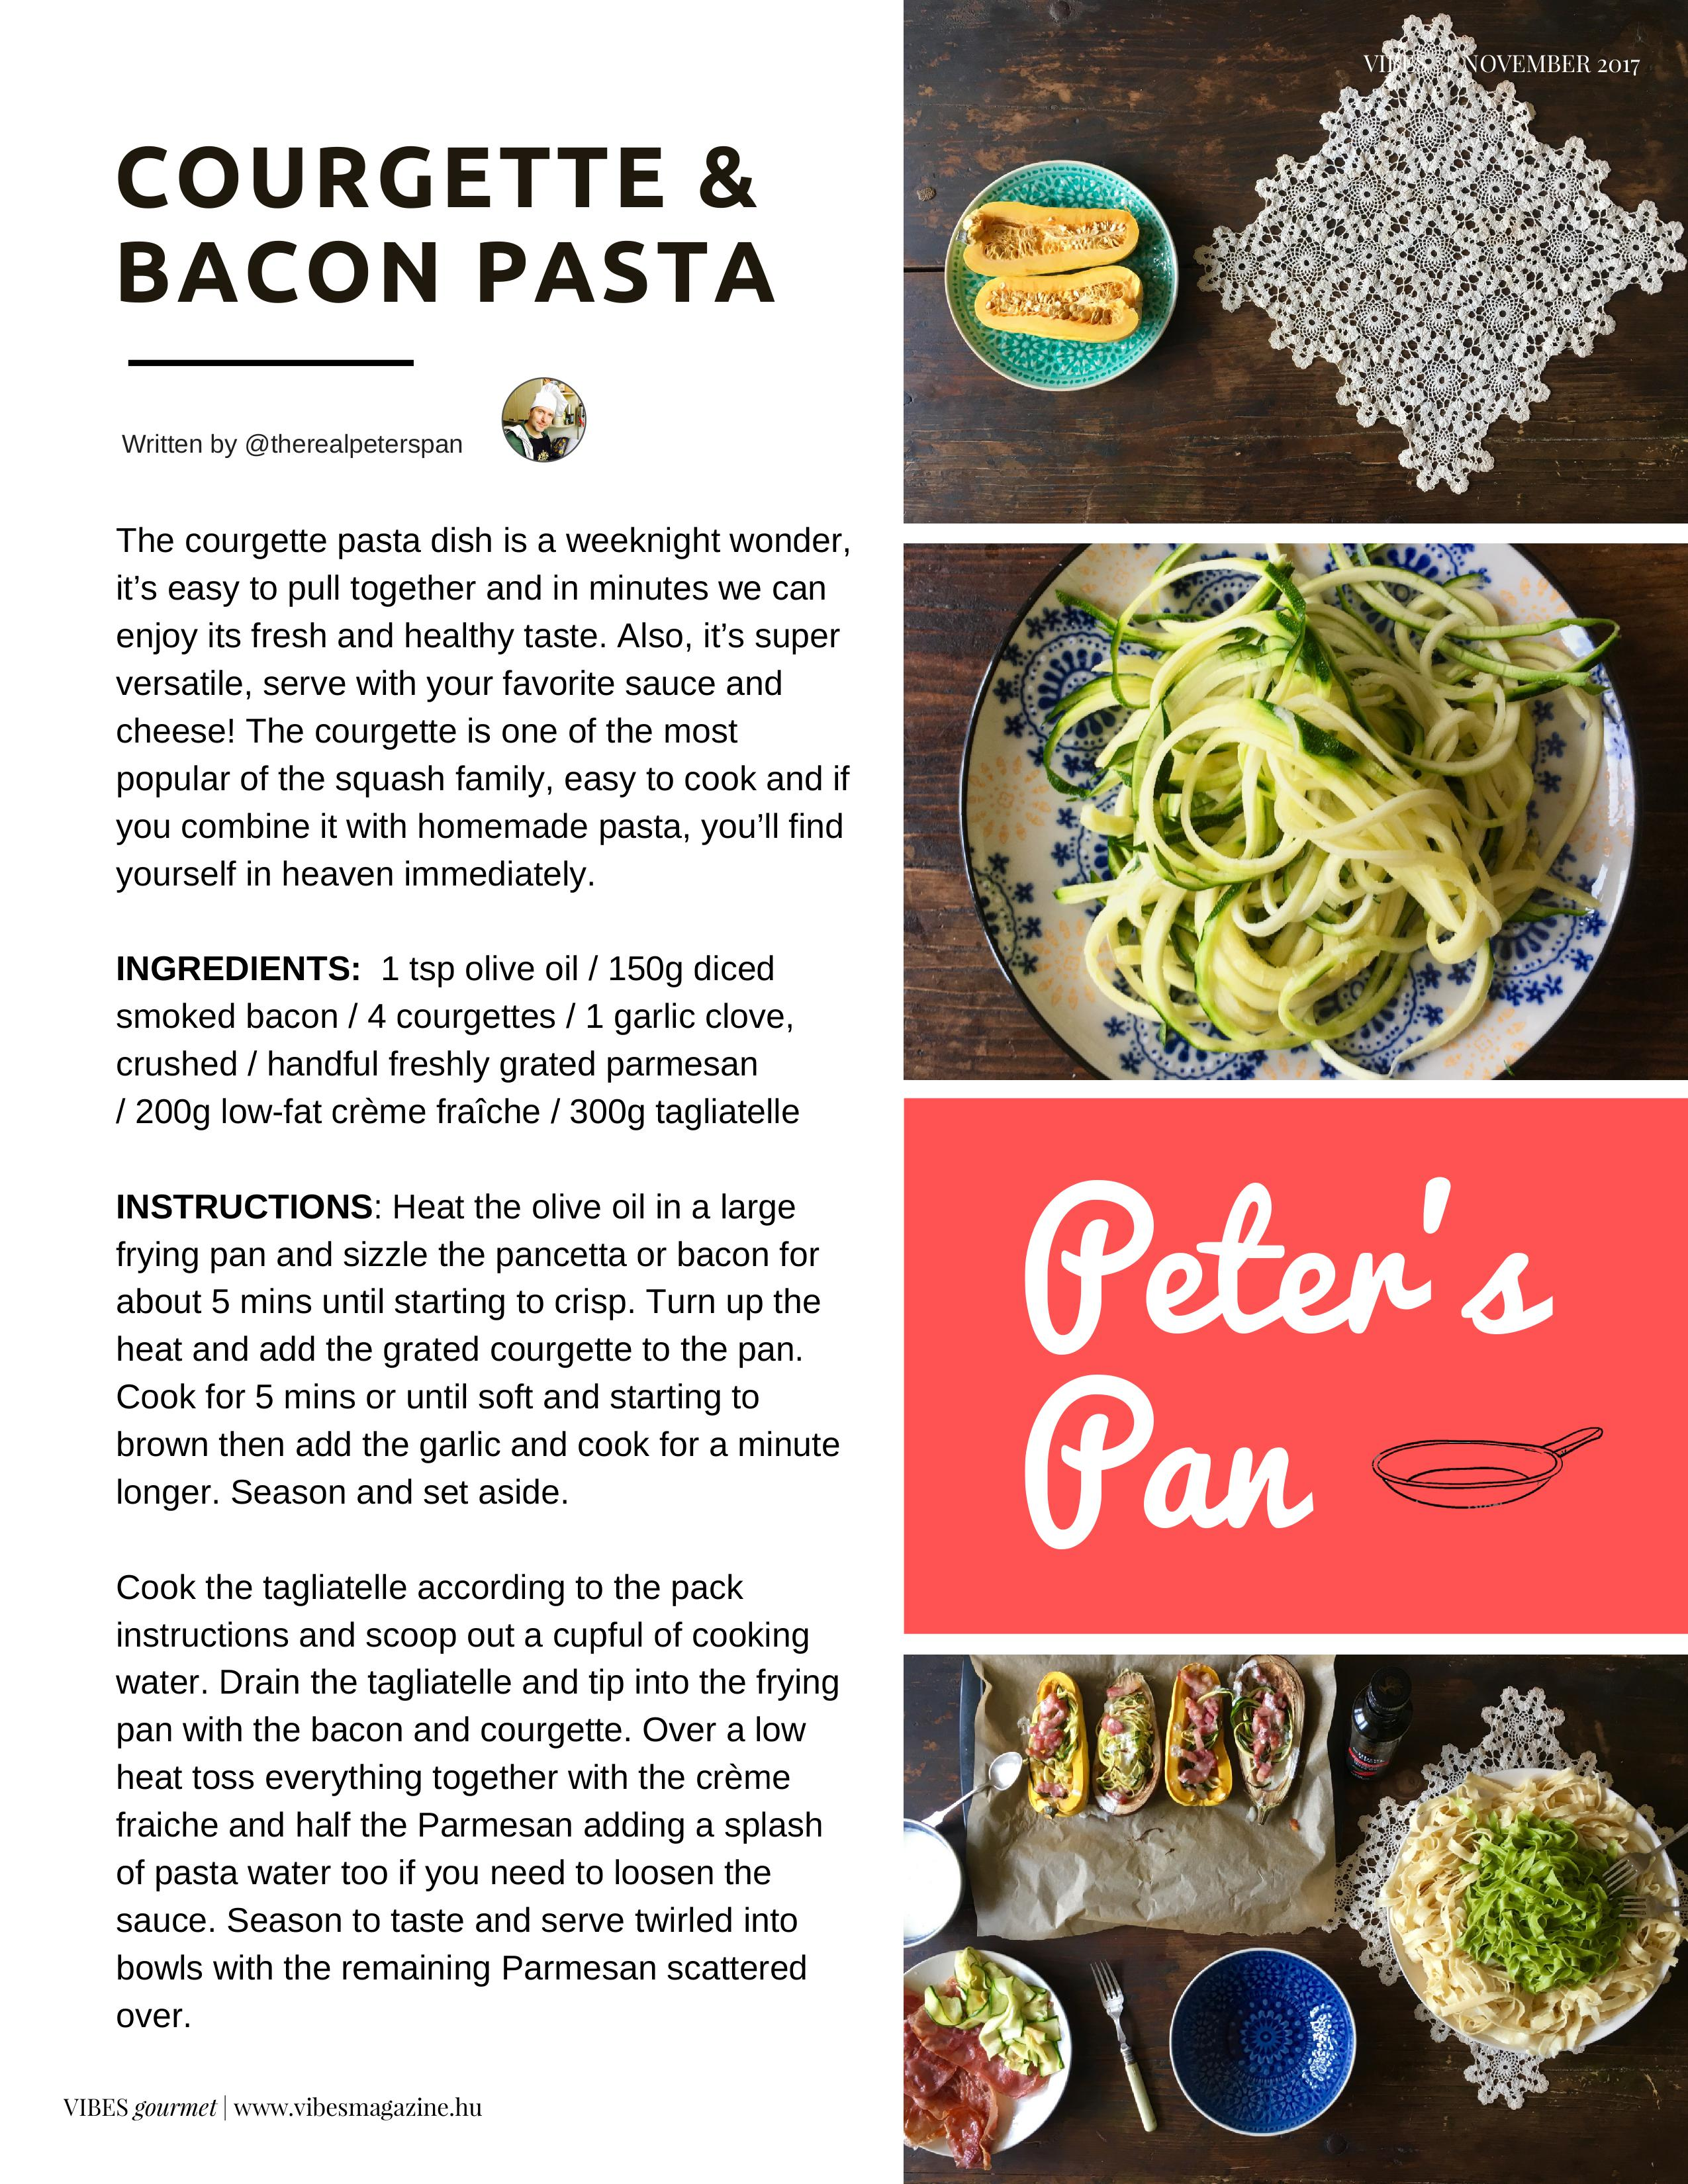 Peter's Pan: COURGETTE & BACON PASTA - November 2017 VIBES